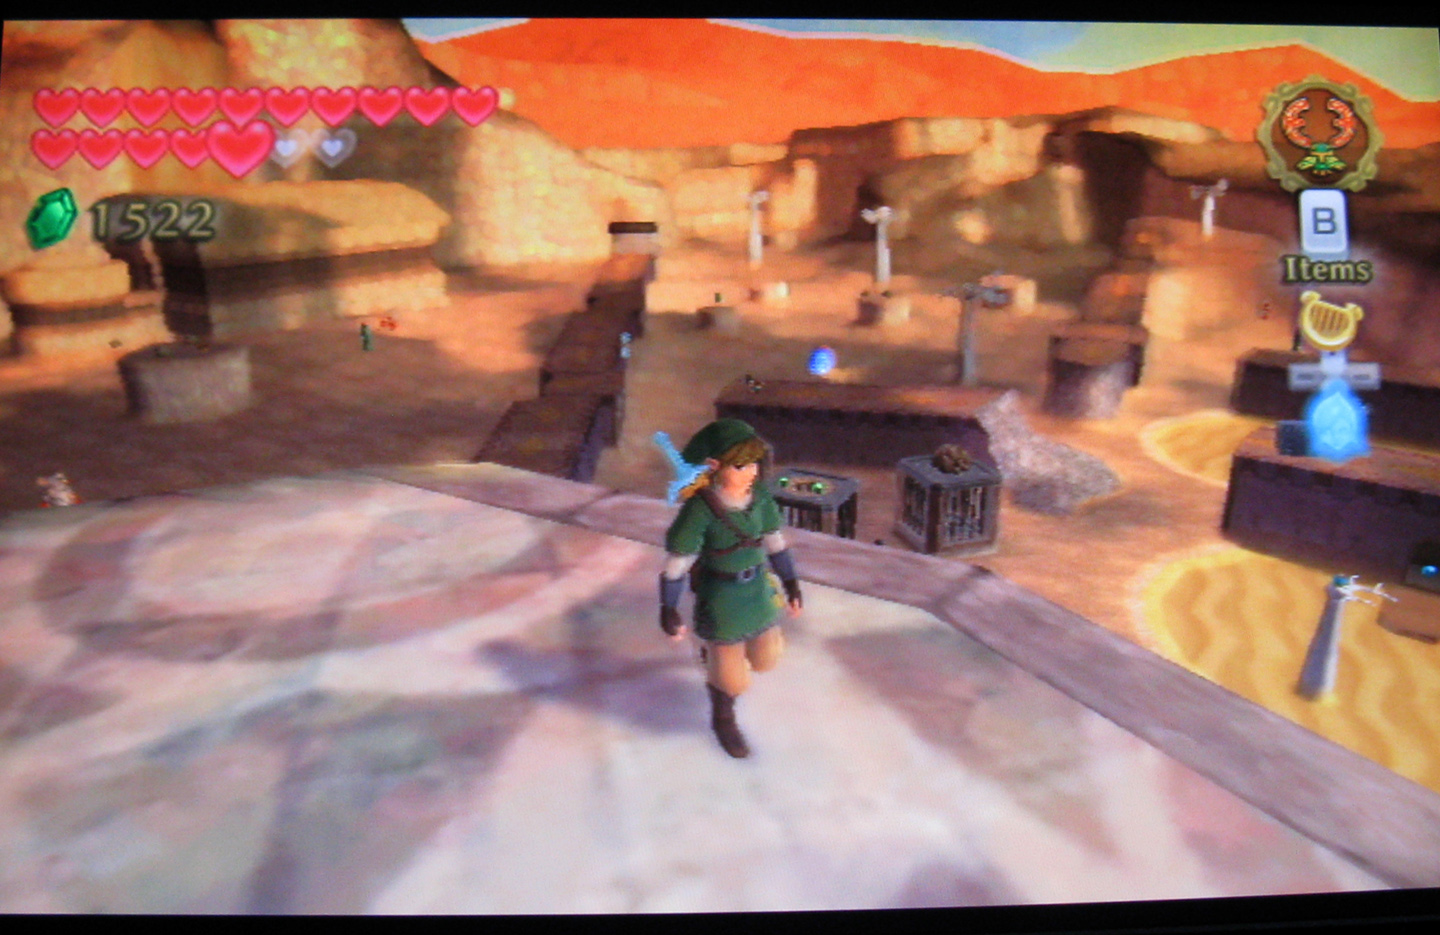 Skyward_Sword_Desert.jpg